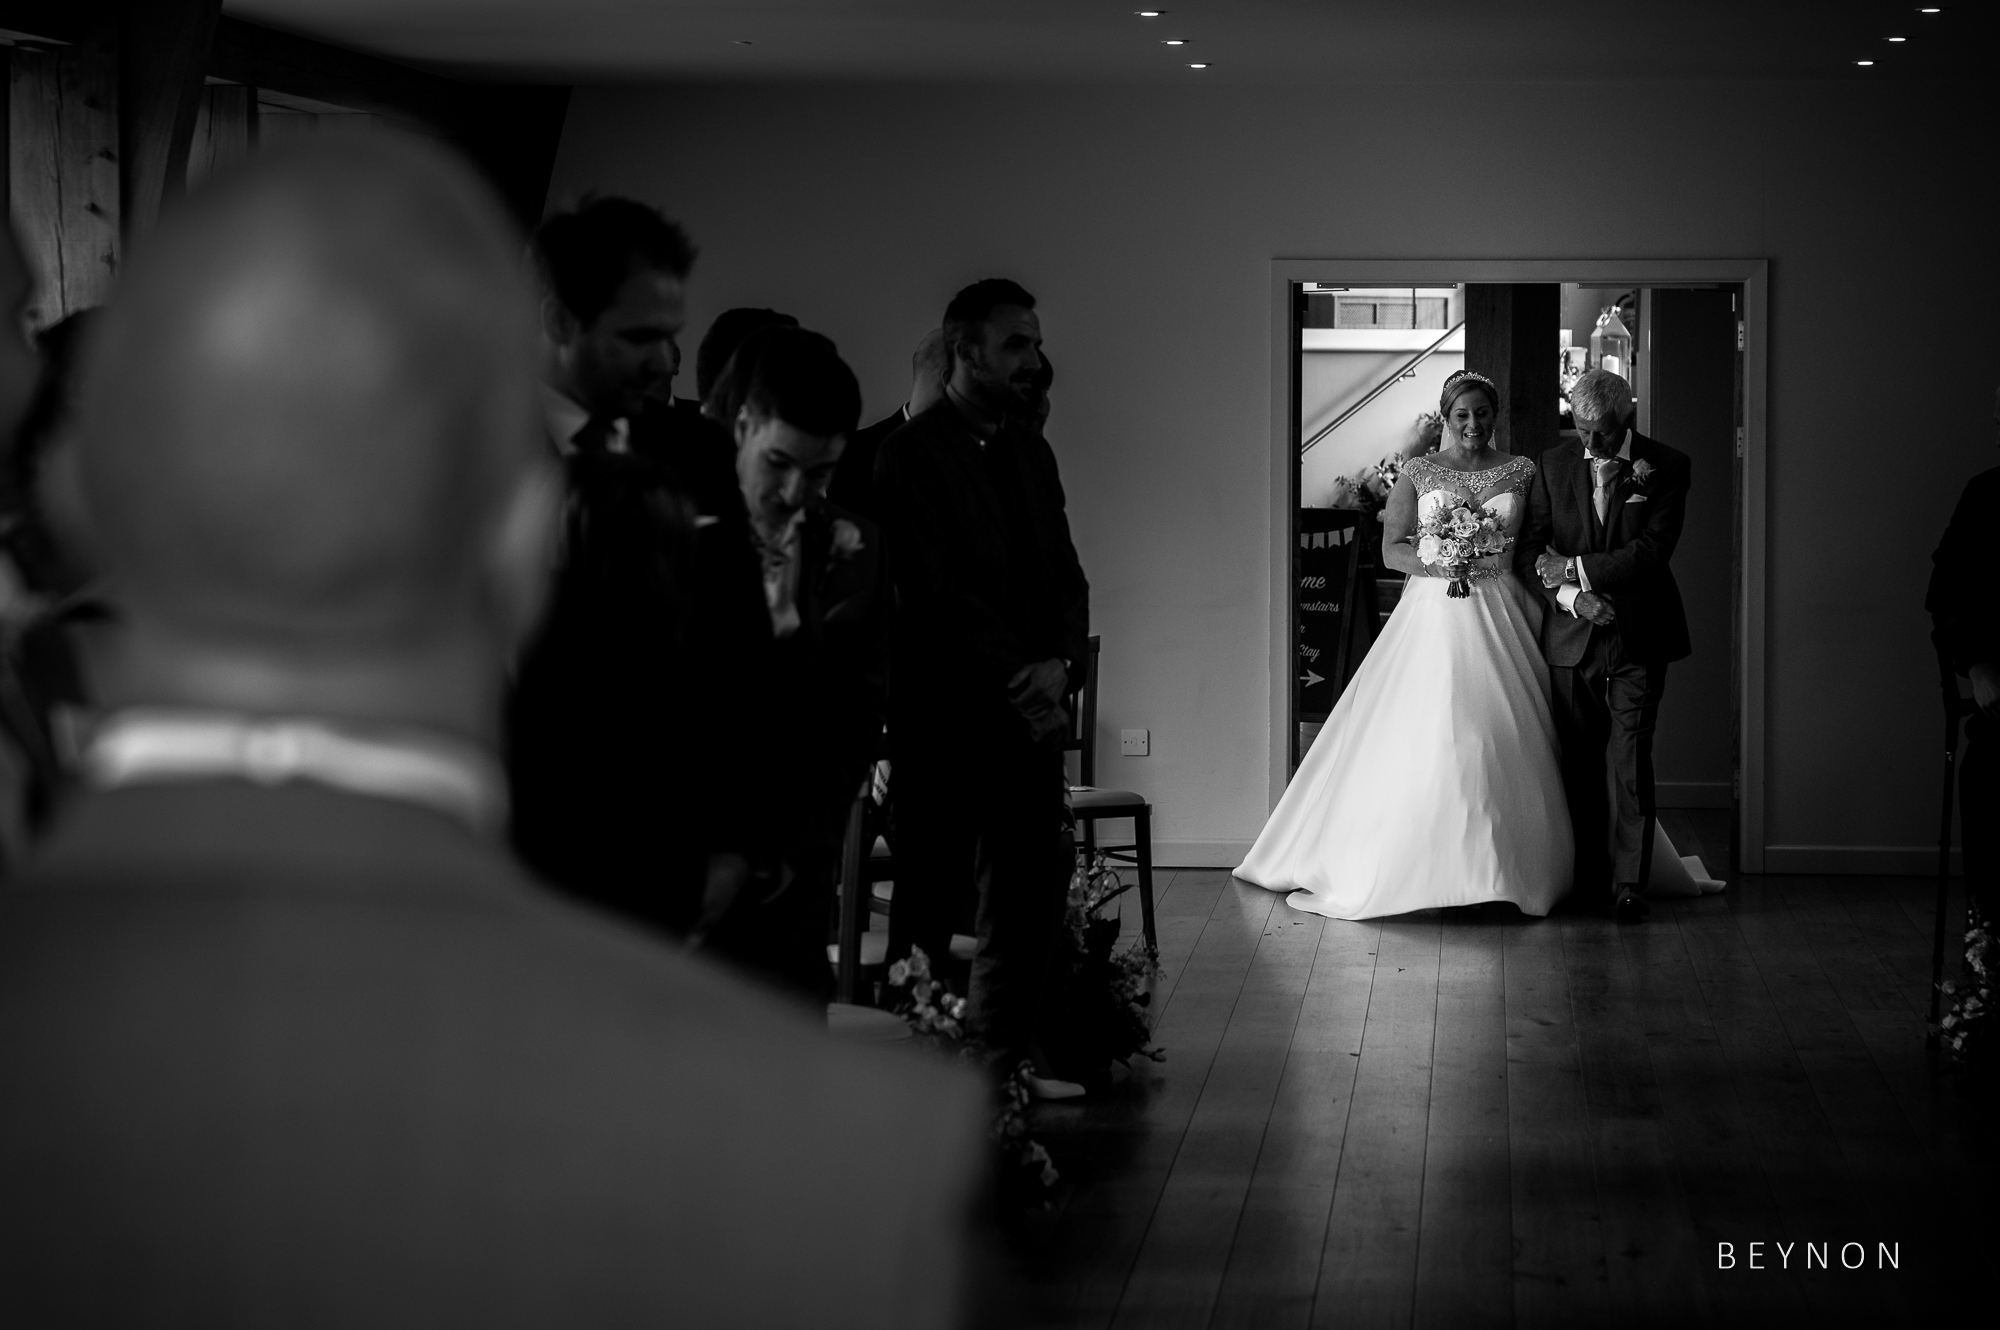 Black and White photo of the bride walking down the aisle